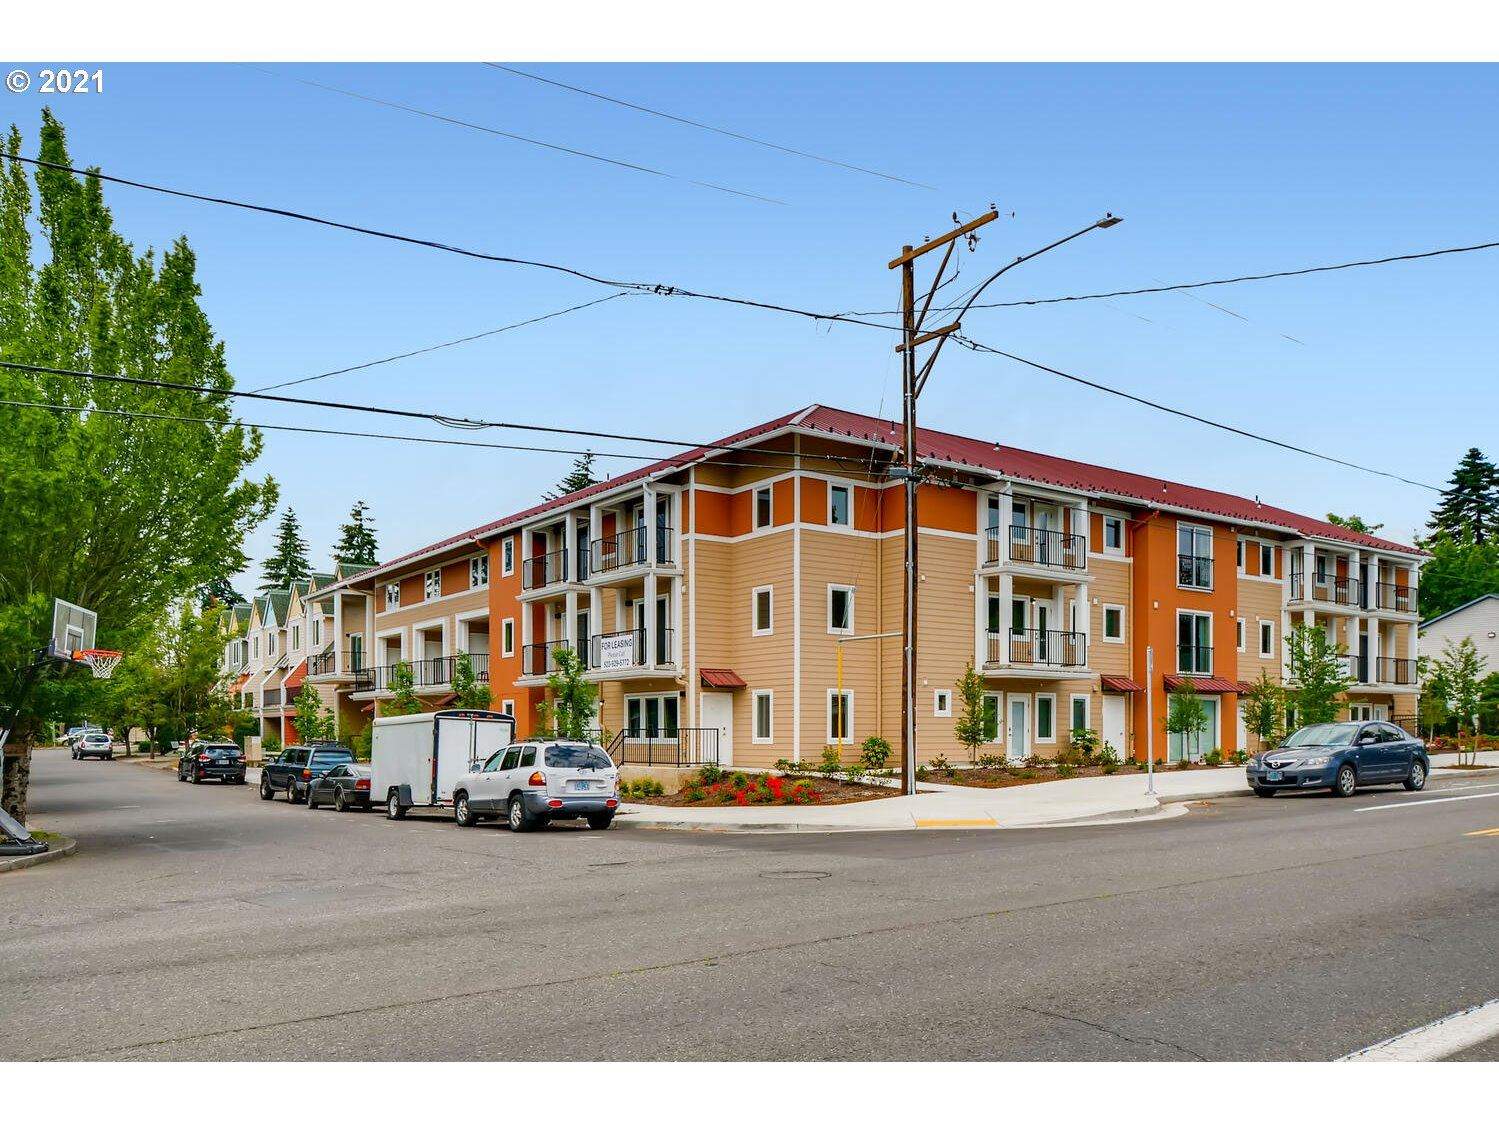 14755 NE Couch AVE, Portland, OR 97230 - MLS#: 21550445